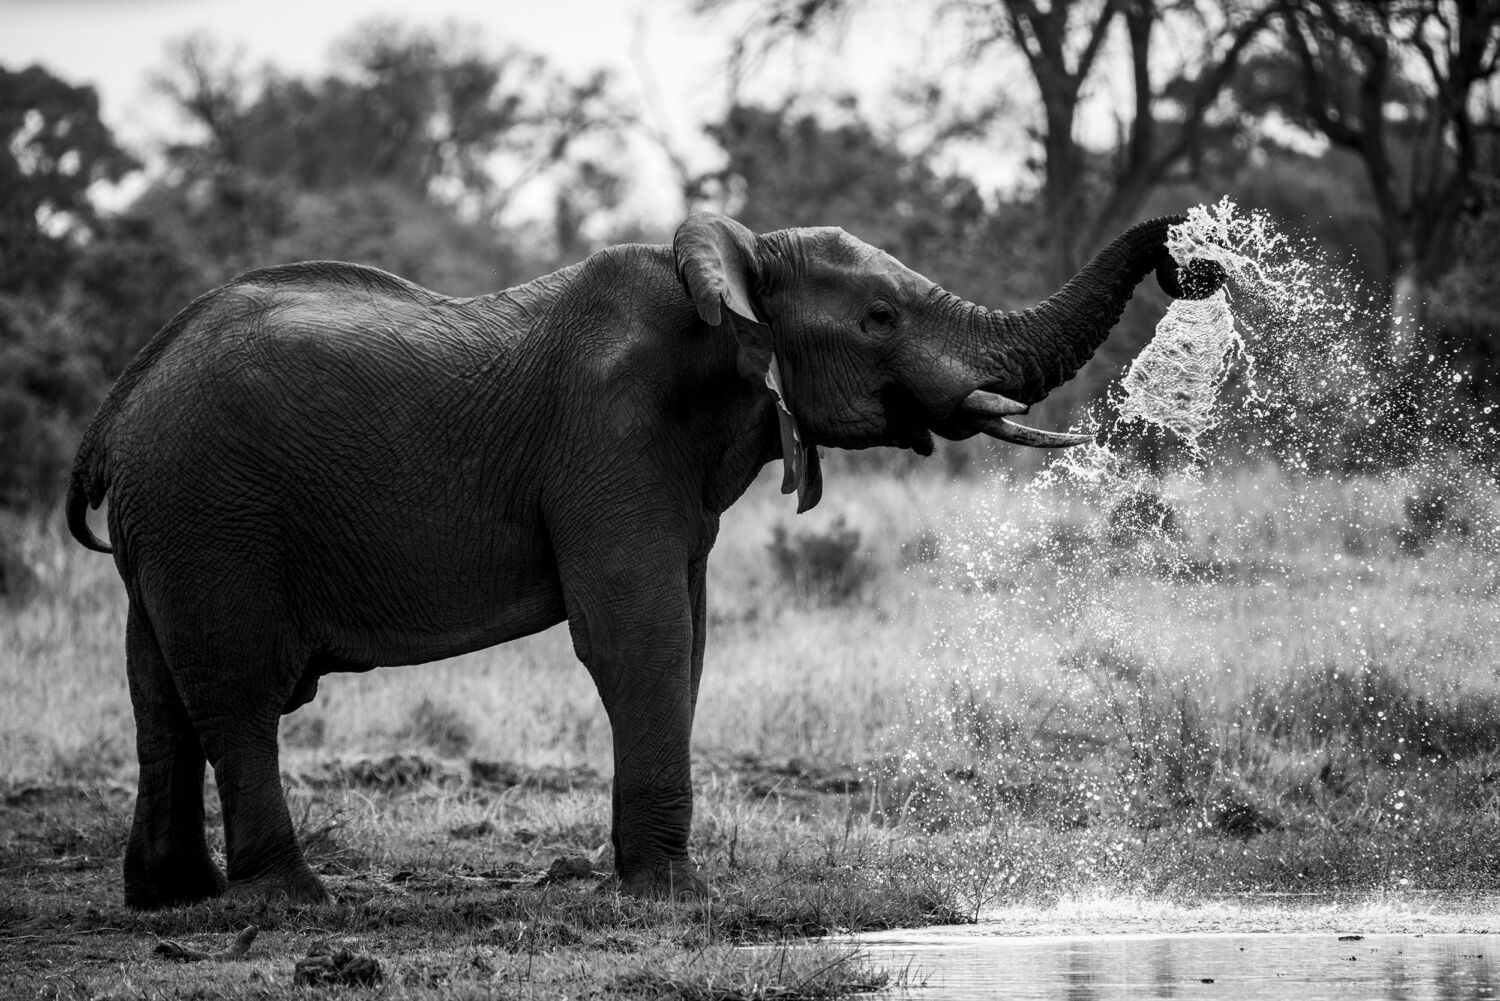 Elephant at Waters Edge - Fine Art Photography Print